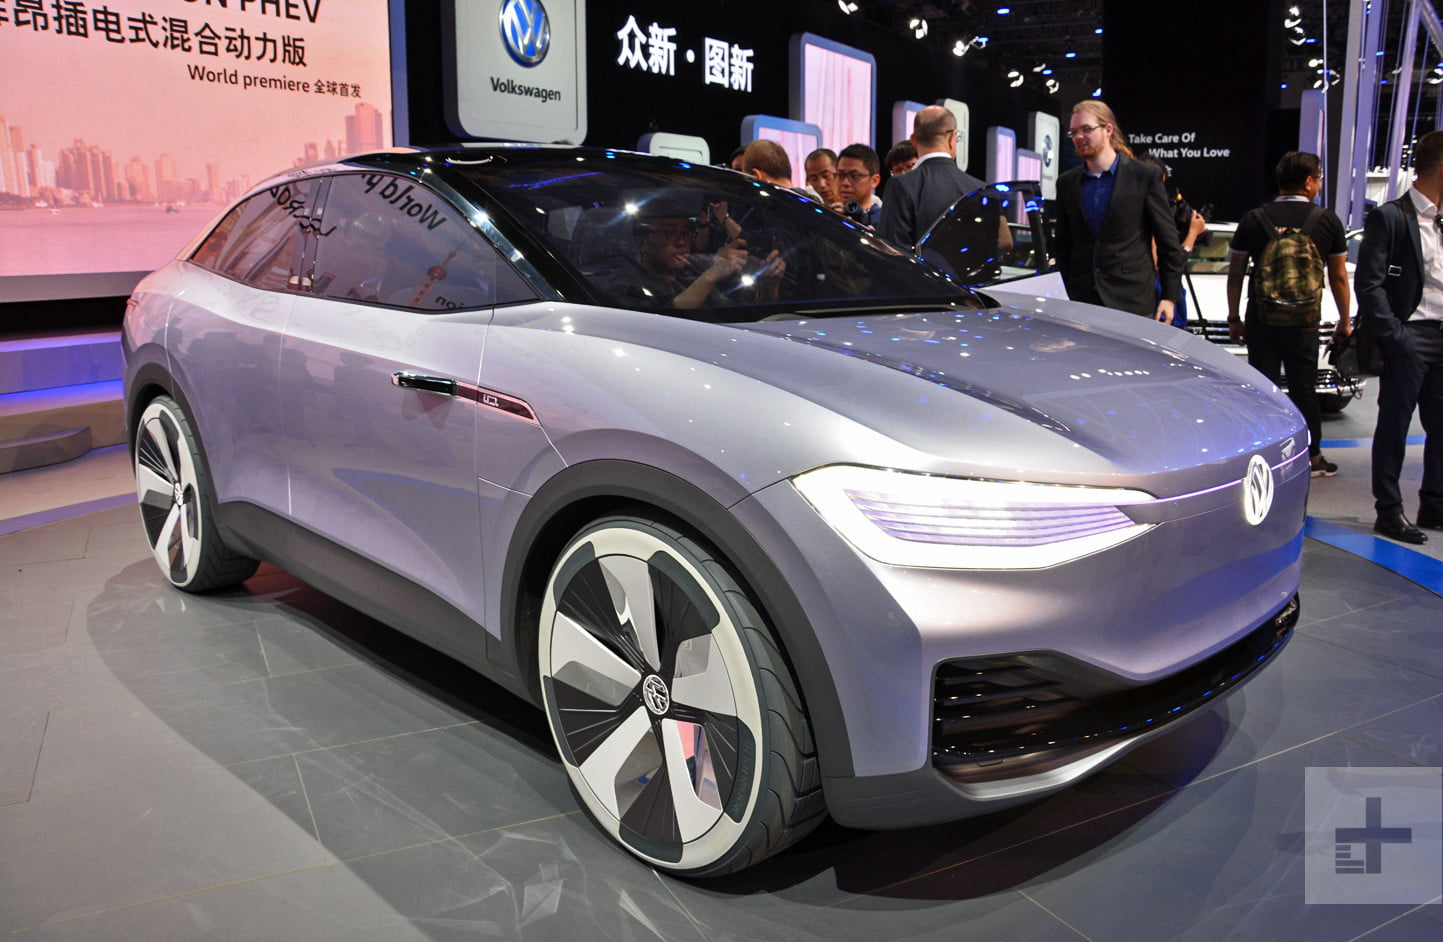 VW ID Crozz Electric Crossover SUV: Design, Release >> Volkswagen I D Crozz Concept Goes Into Production In 2019 Digital